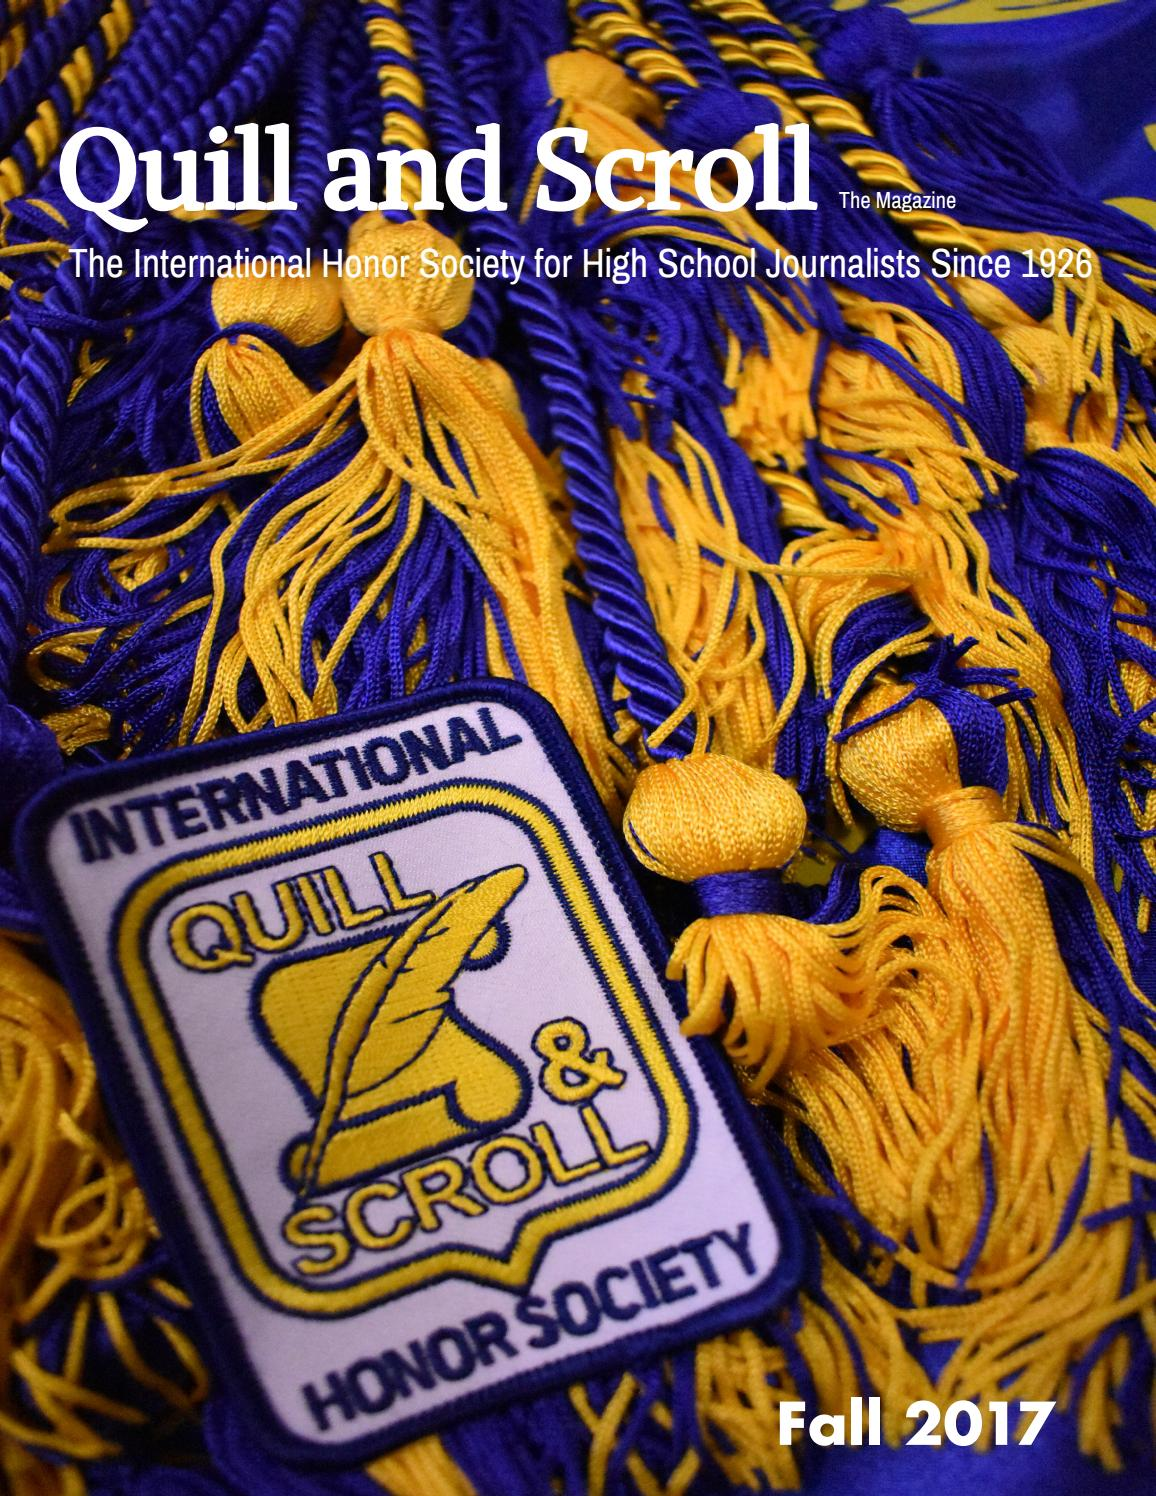 Quill & Scroll: Fall 2017 Magazine by Quill and Scroll